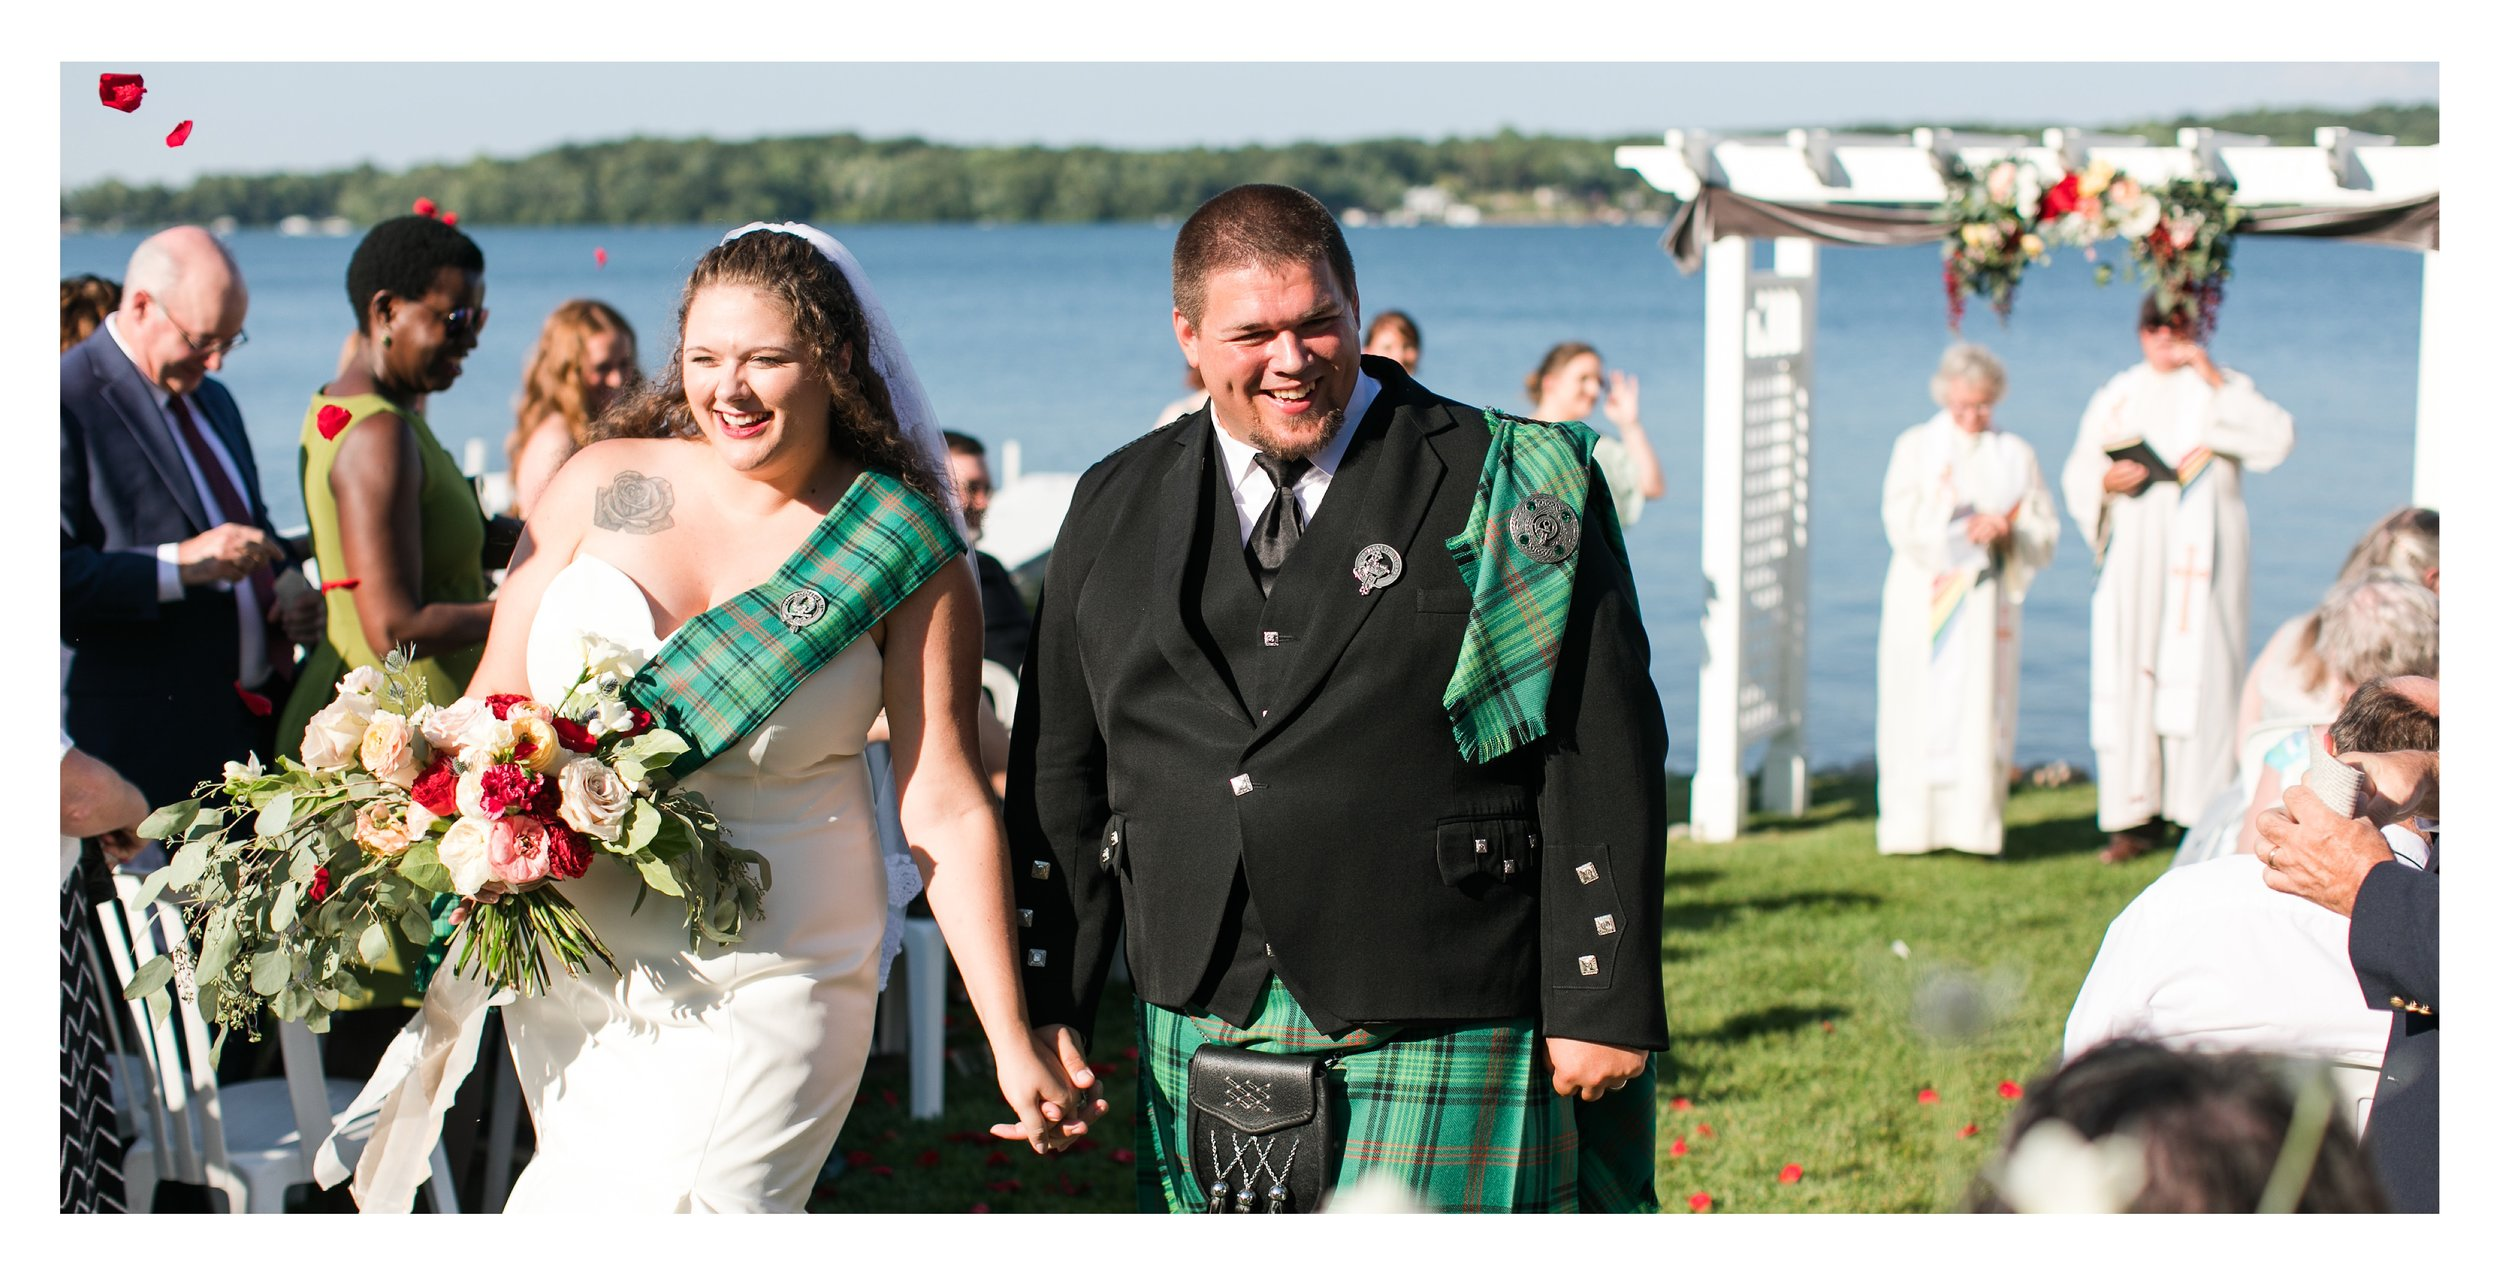 Our_Wedding_Album_12x12_-_30_pages_23.jpg